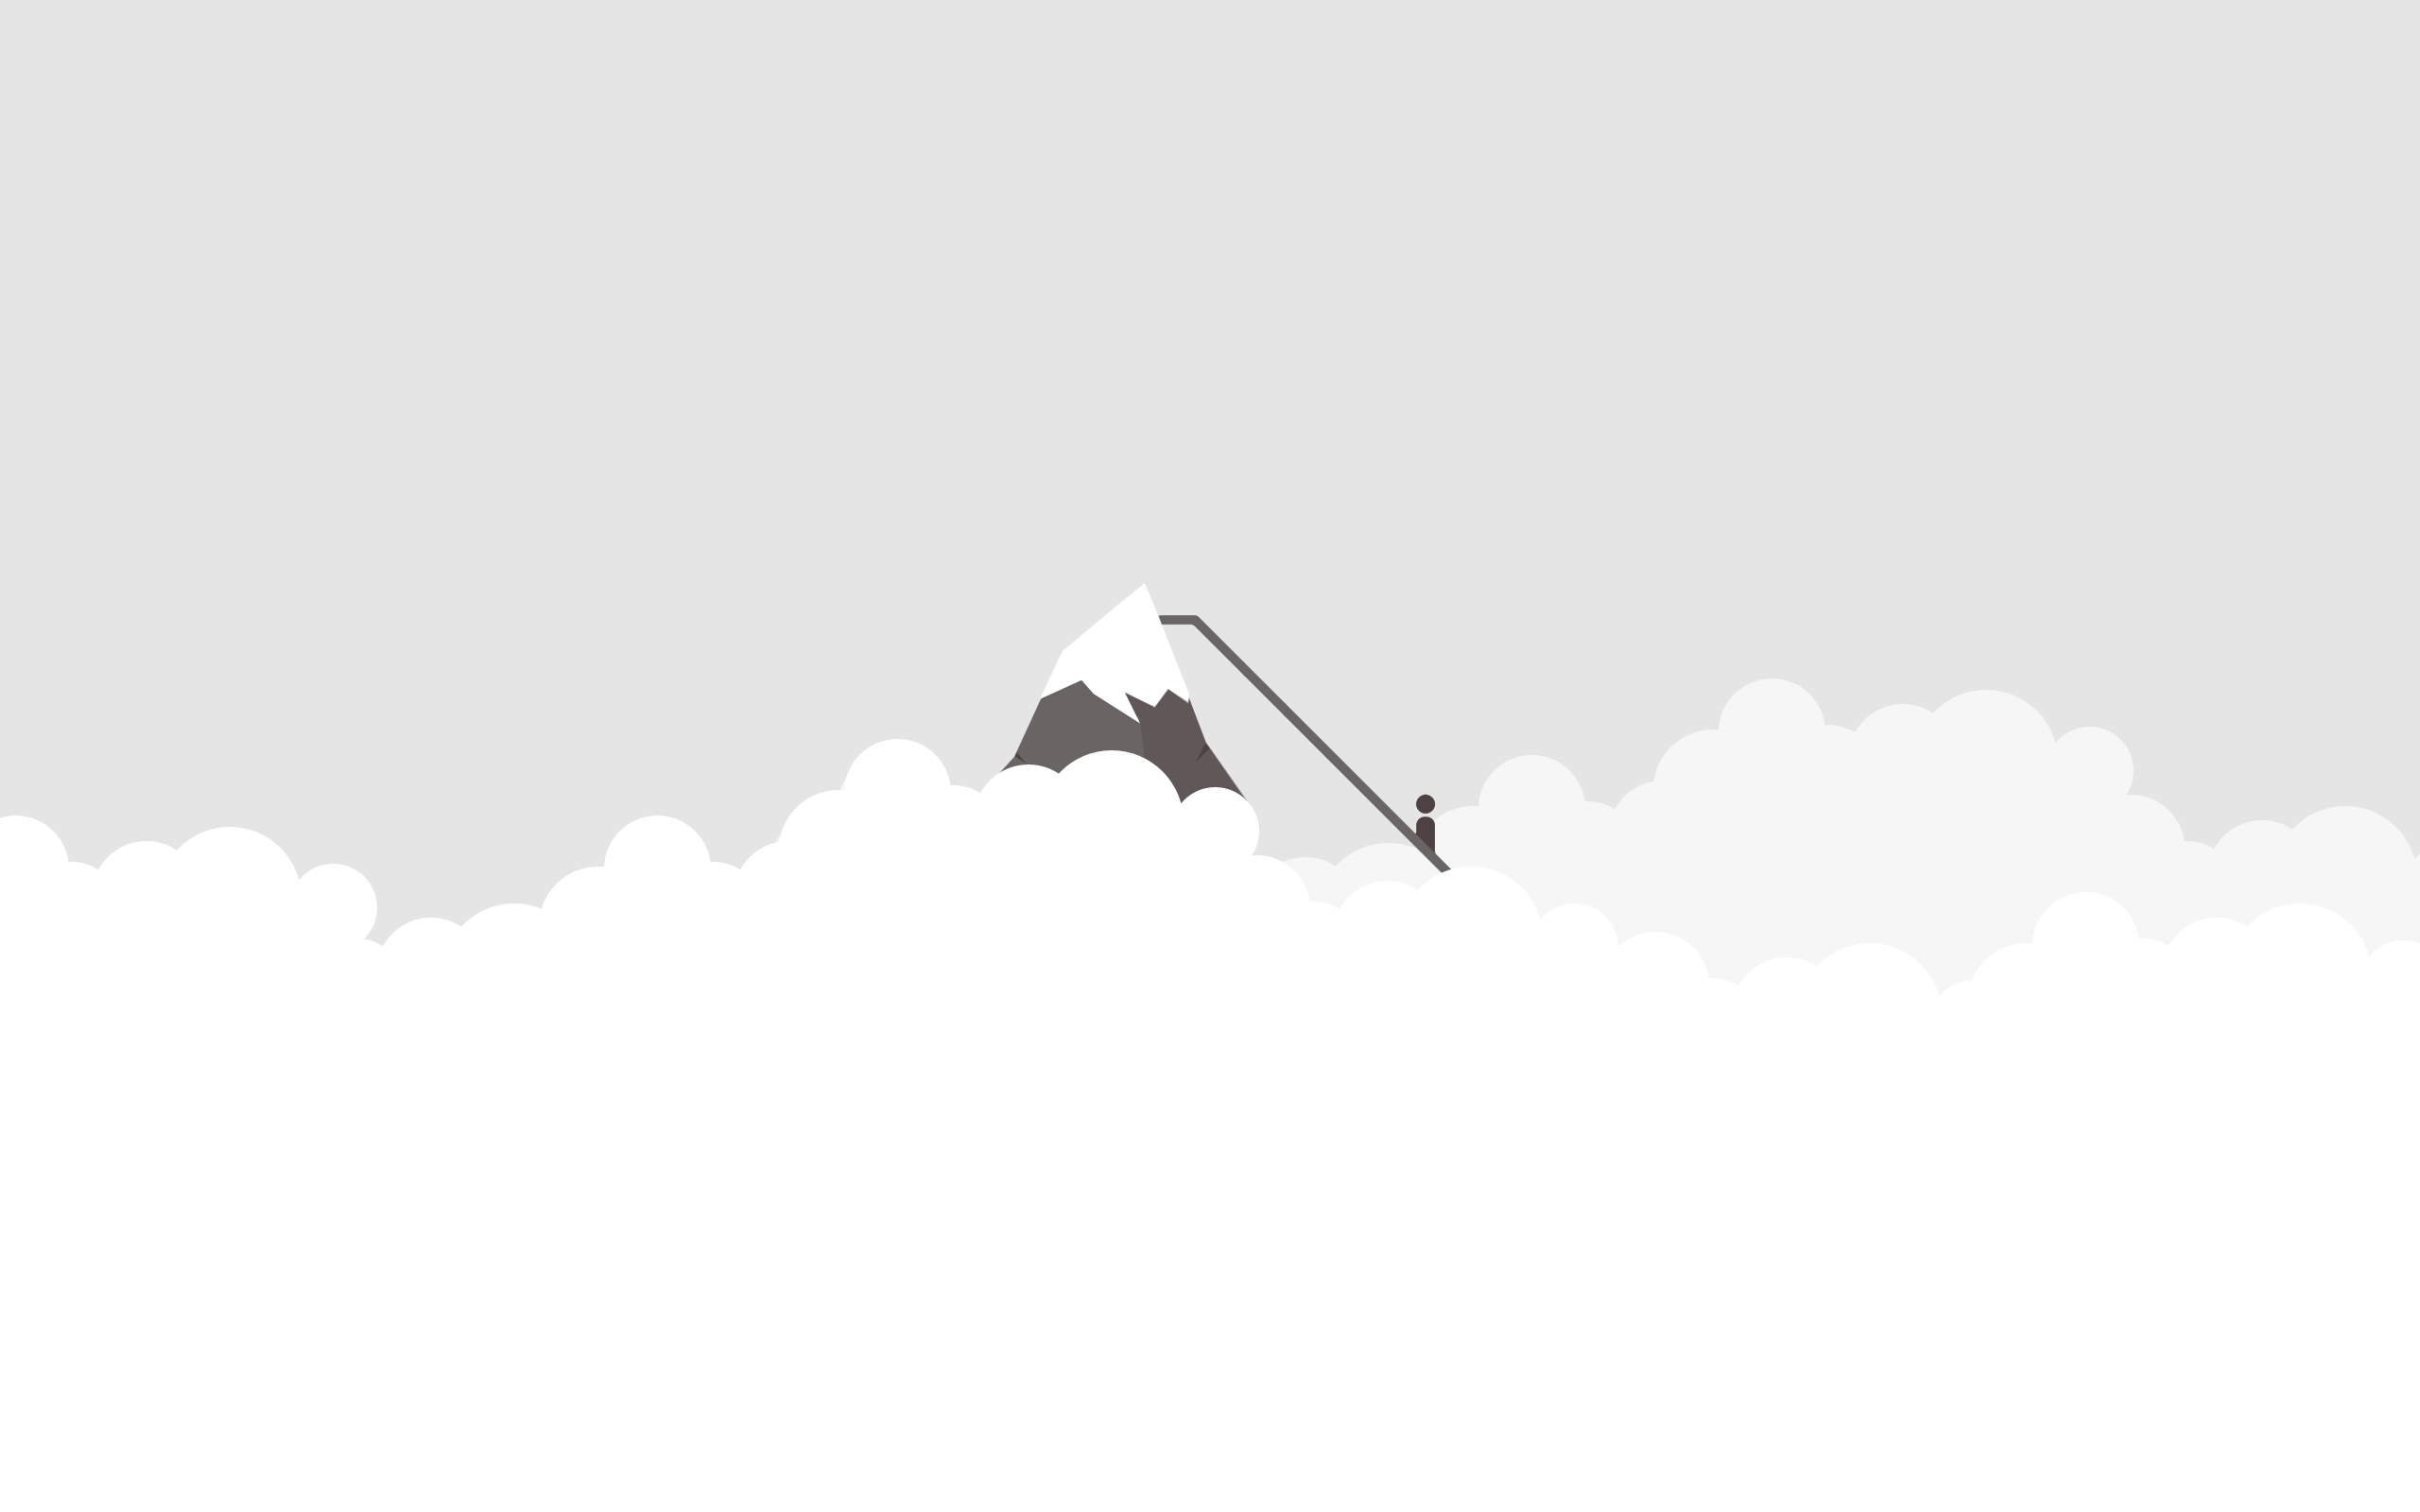 Everest Minimalist Wallpaper Light Minimalist Wallpaper Minimal Wallpaper Cool Wallpapers For Phones